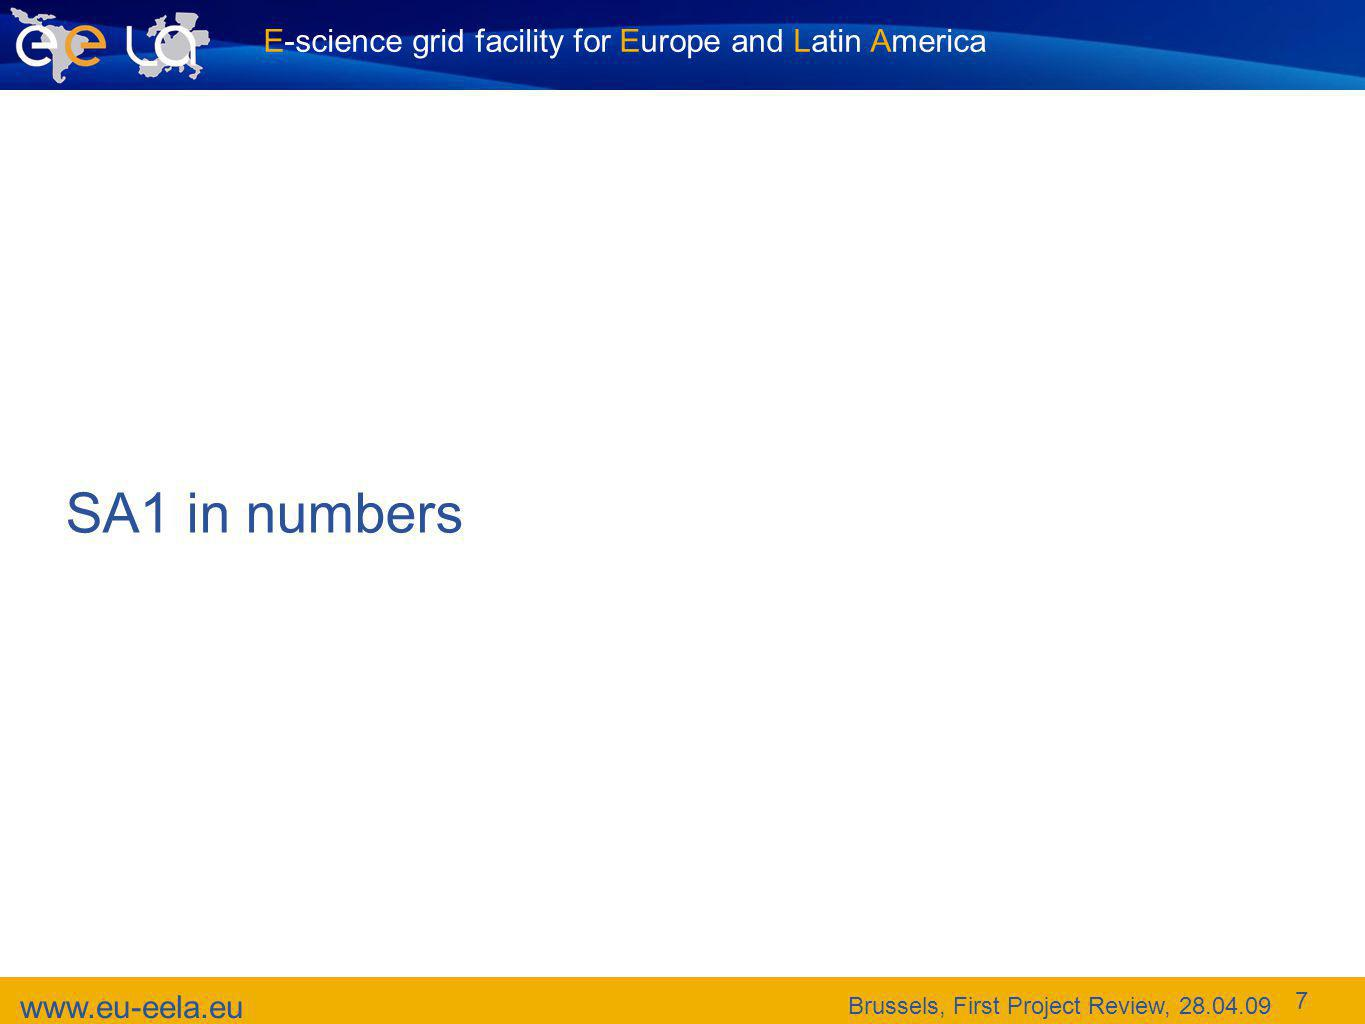 E-science grid facility for Europe and Latin America www.eu-eela.eu Brussels, First Project Review, 28.04.09 7 SA1 in numbers